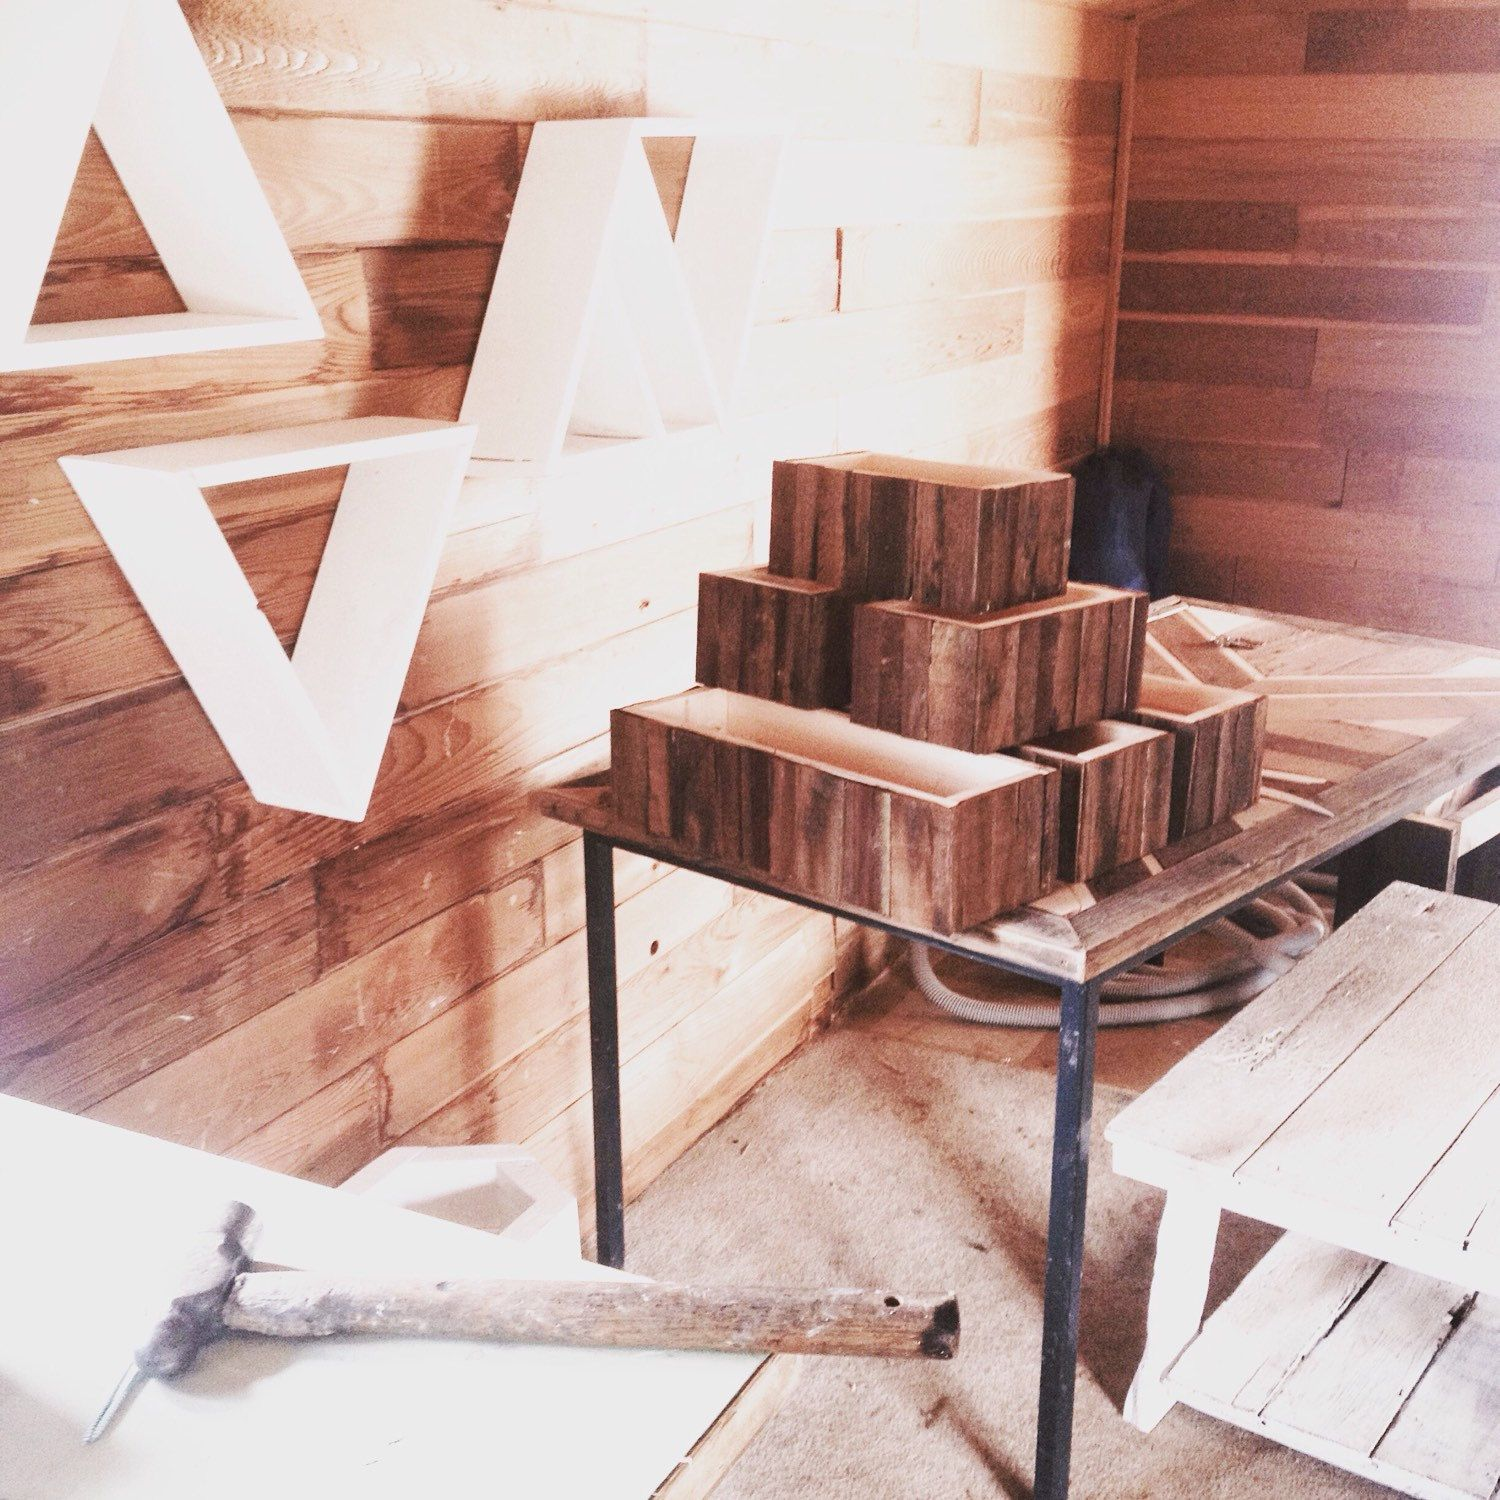 This Tower Of Barn Wood Planters Is Headed For Nyc Hope You Enjoy S Wood Planters Barn Wood Reclaimed Barn Wood